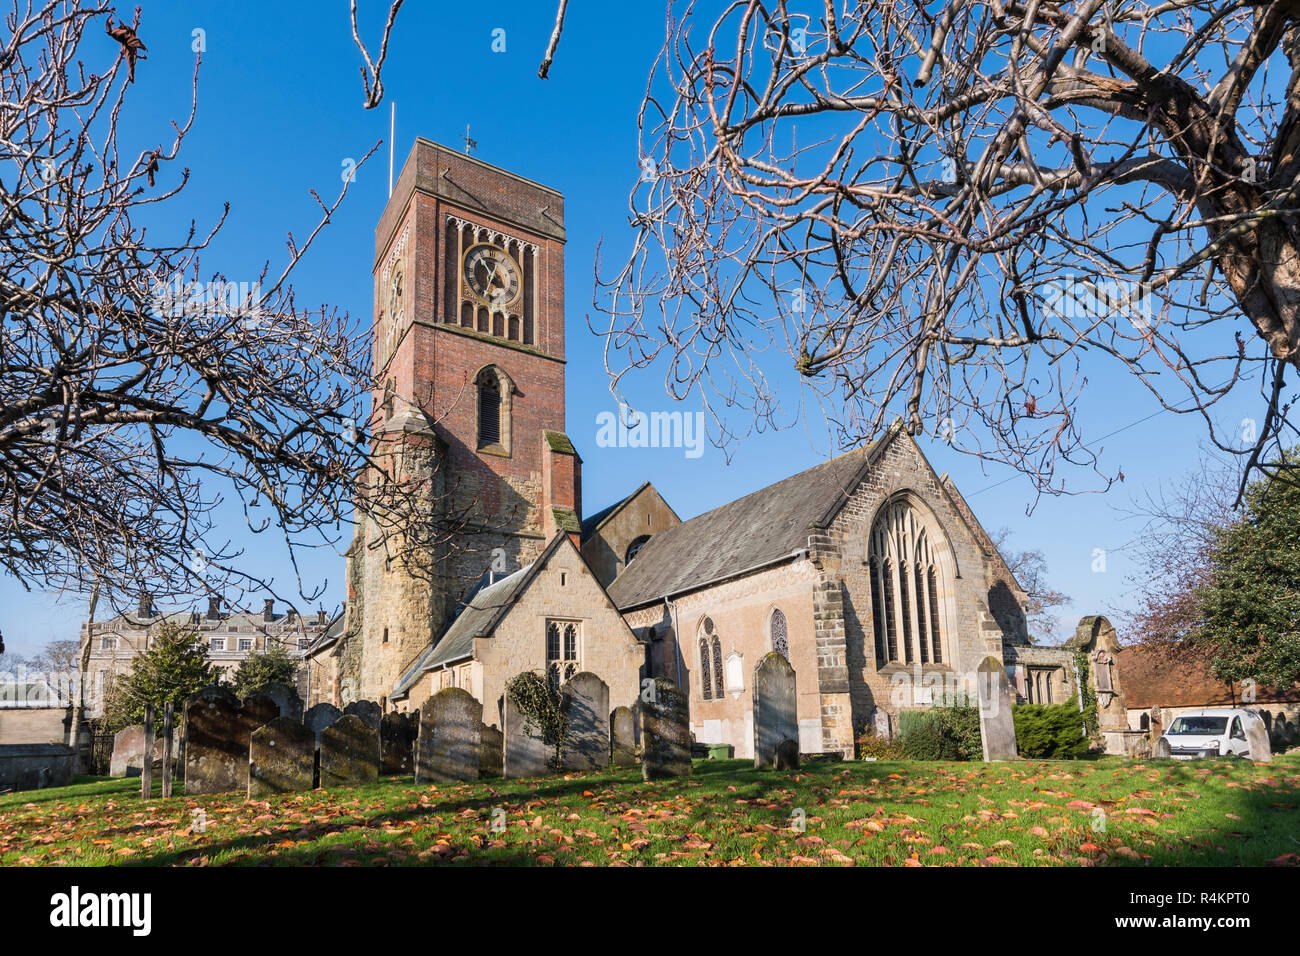 Parish Church of St Mary The Virgin (St Mary's Church) without a spire in Petworth, West Sussex, England, UK. - Stock Image